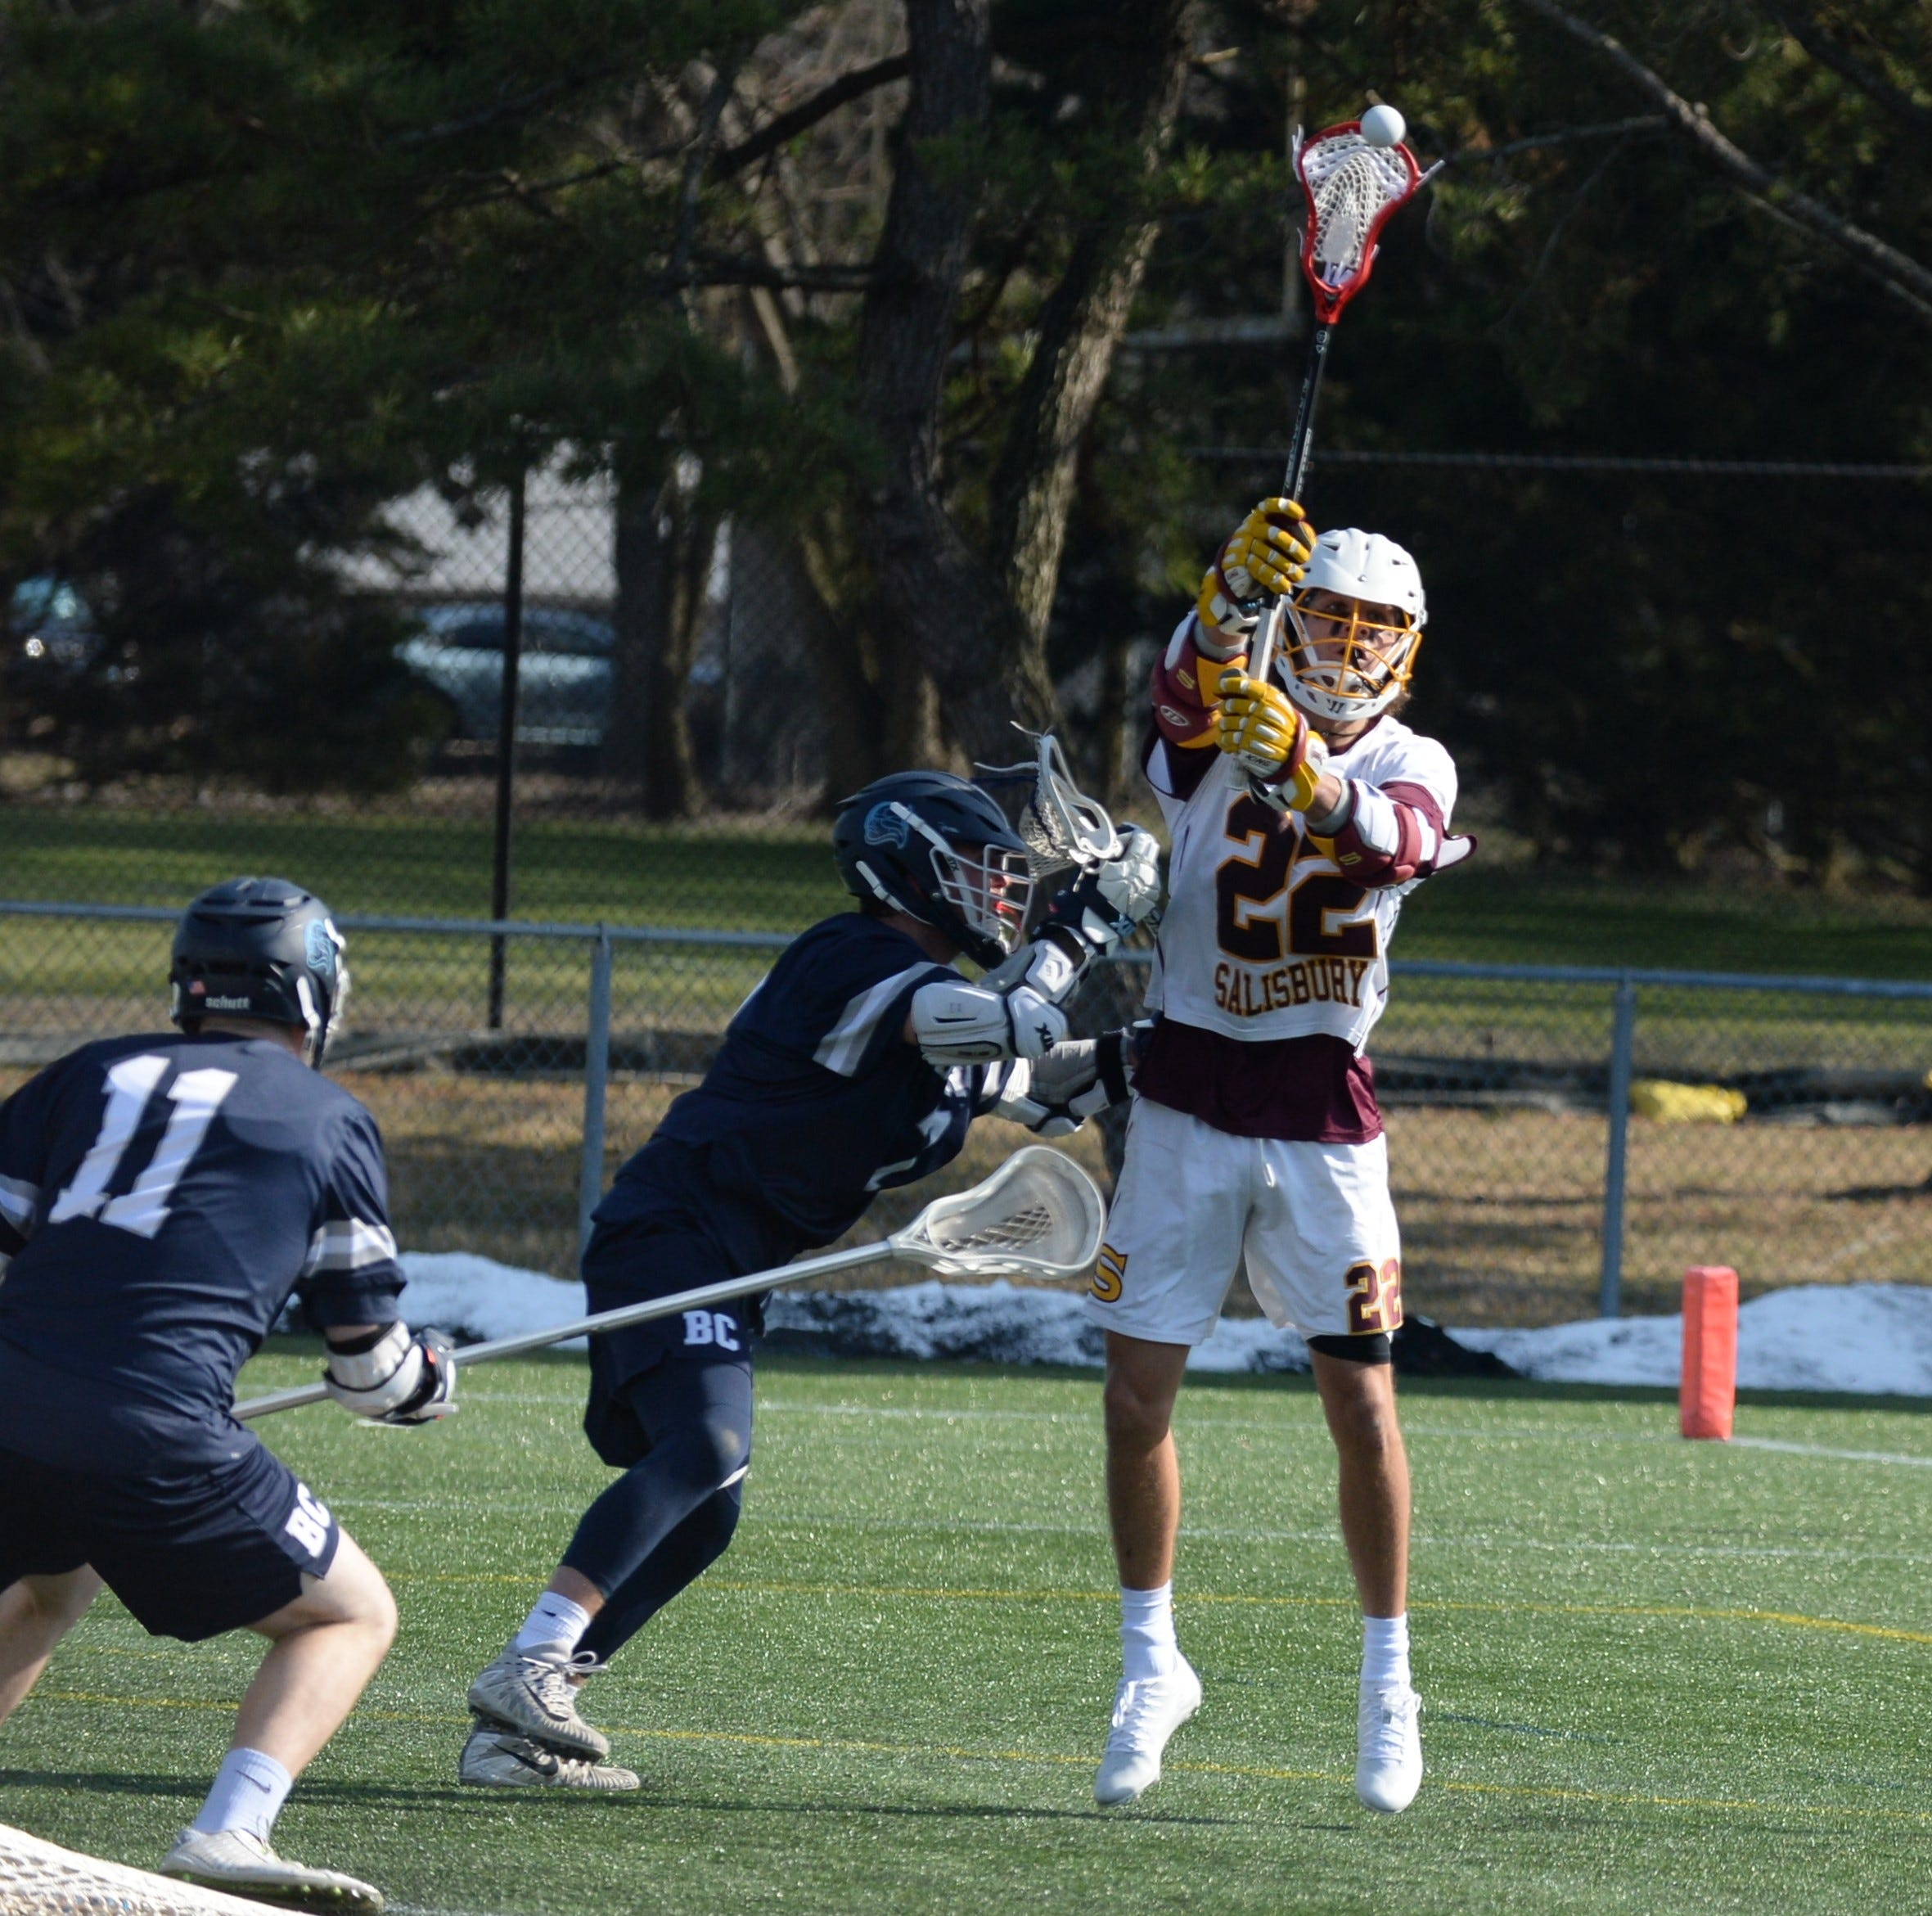 Salisbury men's lacrosse rallies for nonconference win